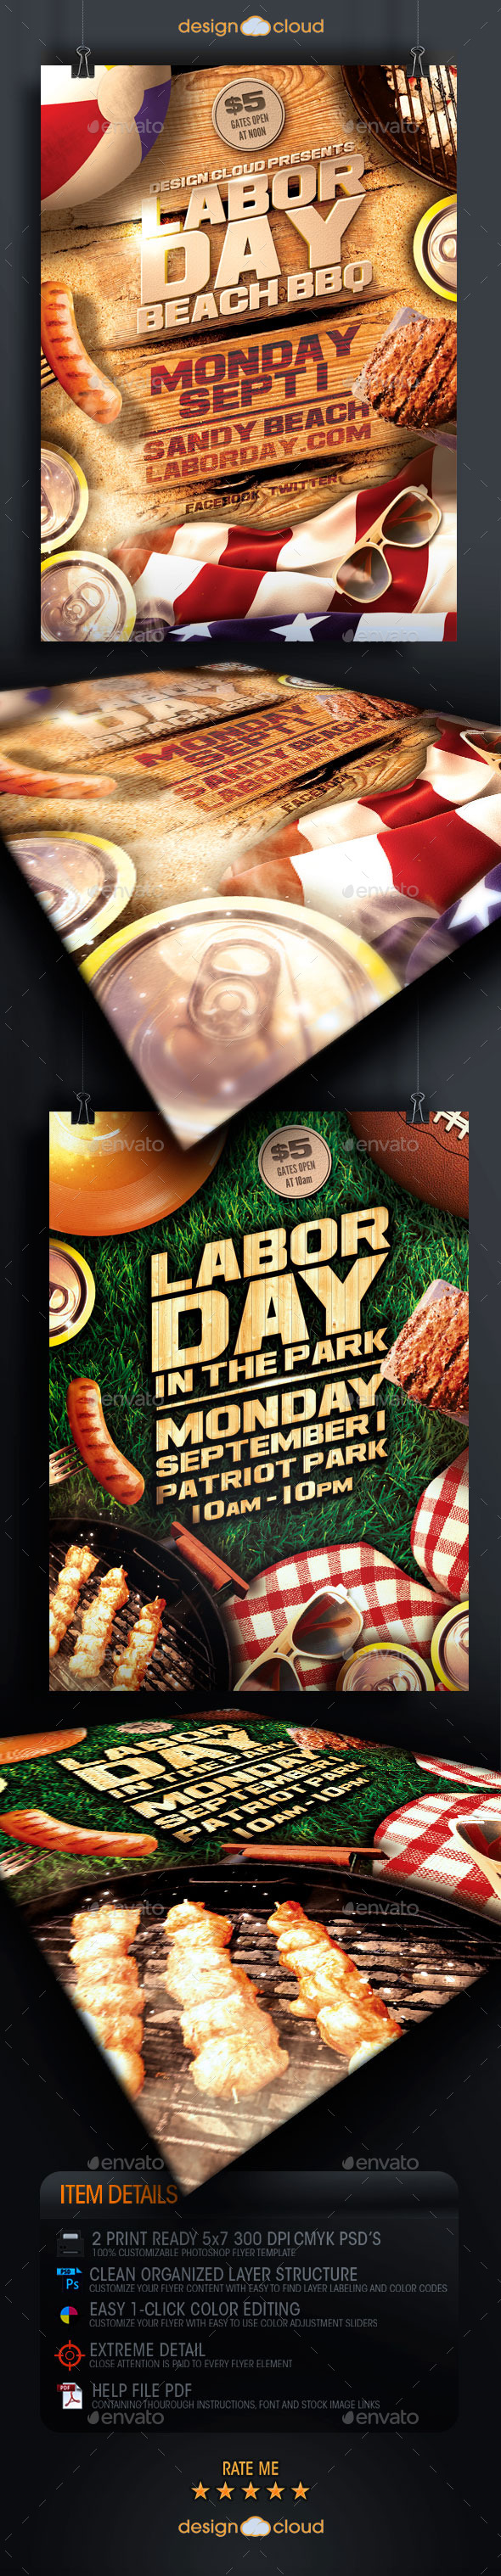 Labor Day Beach and Park Party Flyer Template Duo